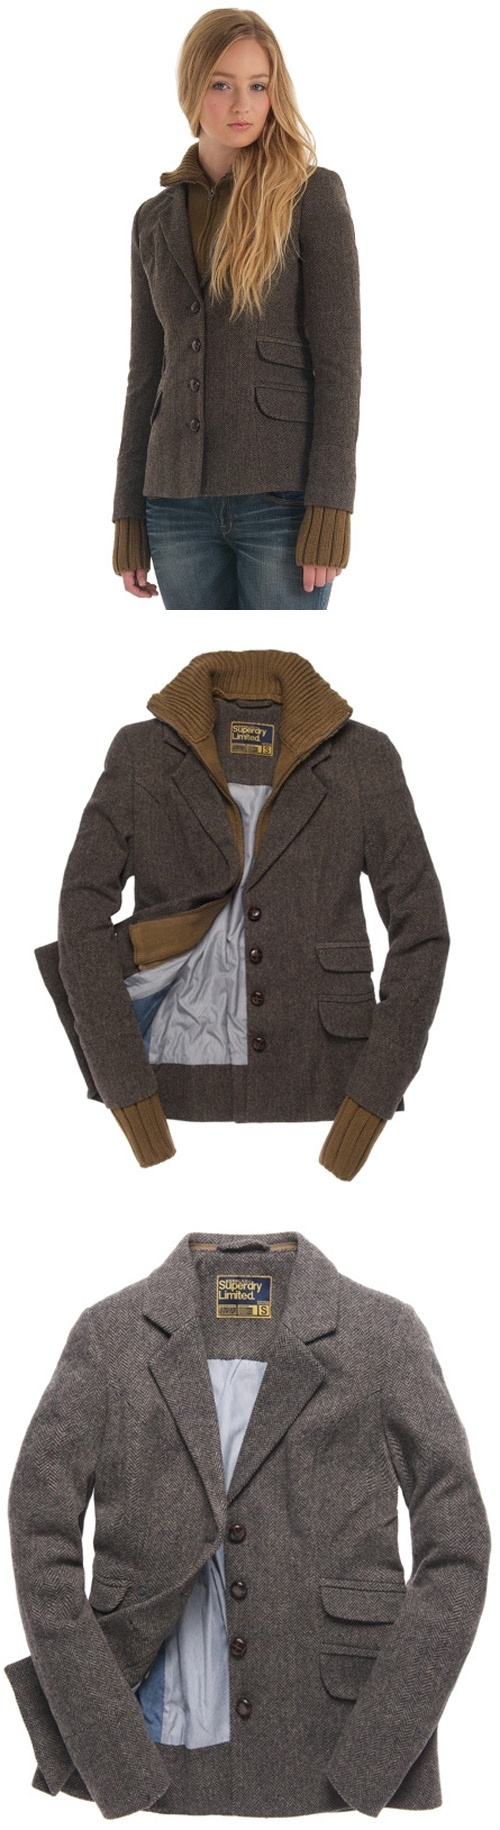 Superdry Hacking Knit Blazer  If I had access to this I would live in it